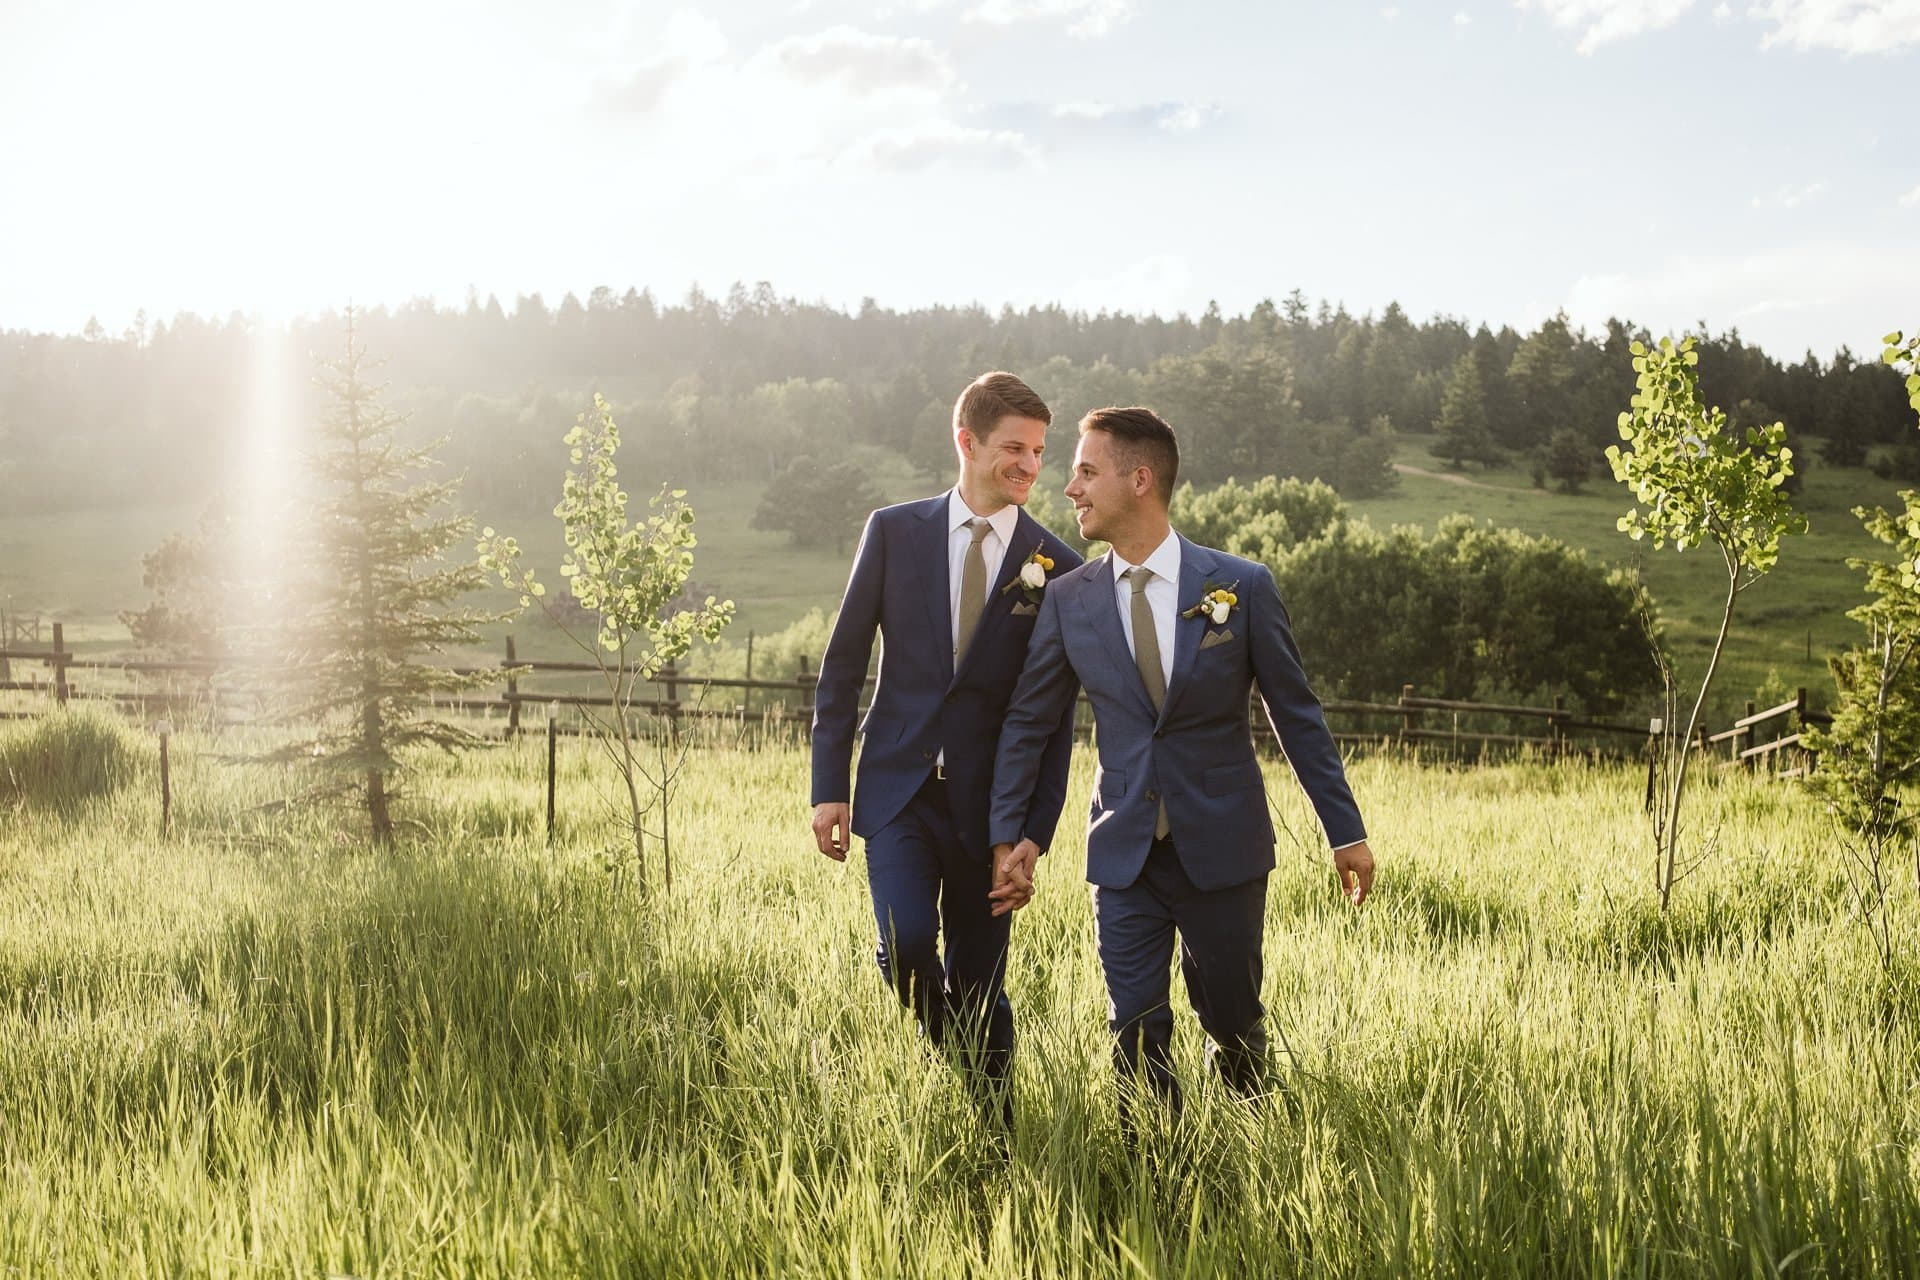 Grooms wedding portraits in golden hour at Colorado Mountain Ranch in Boulder County, same sex wedding photography